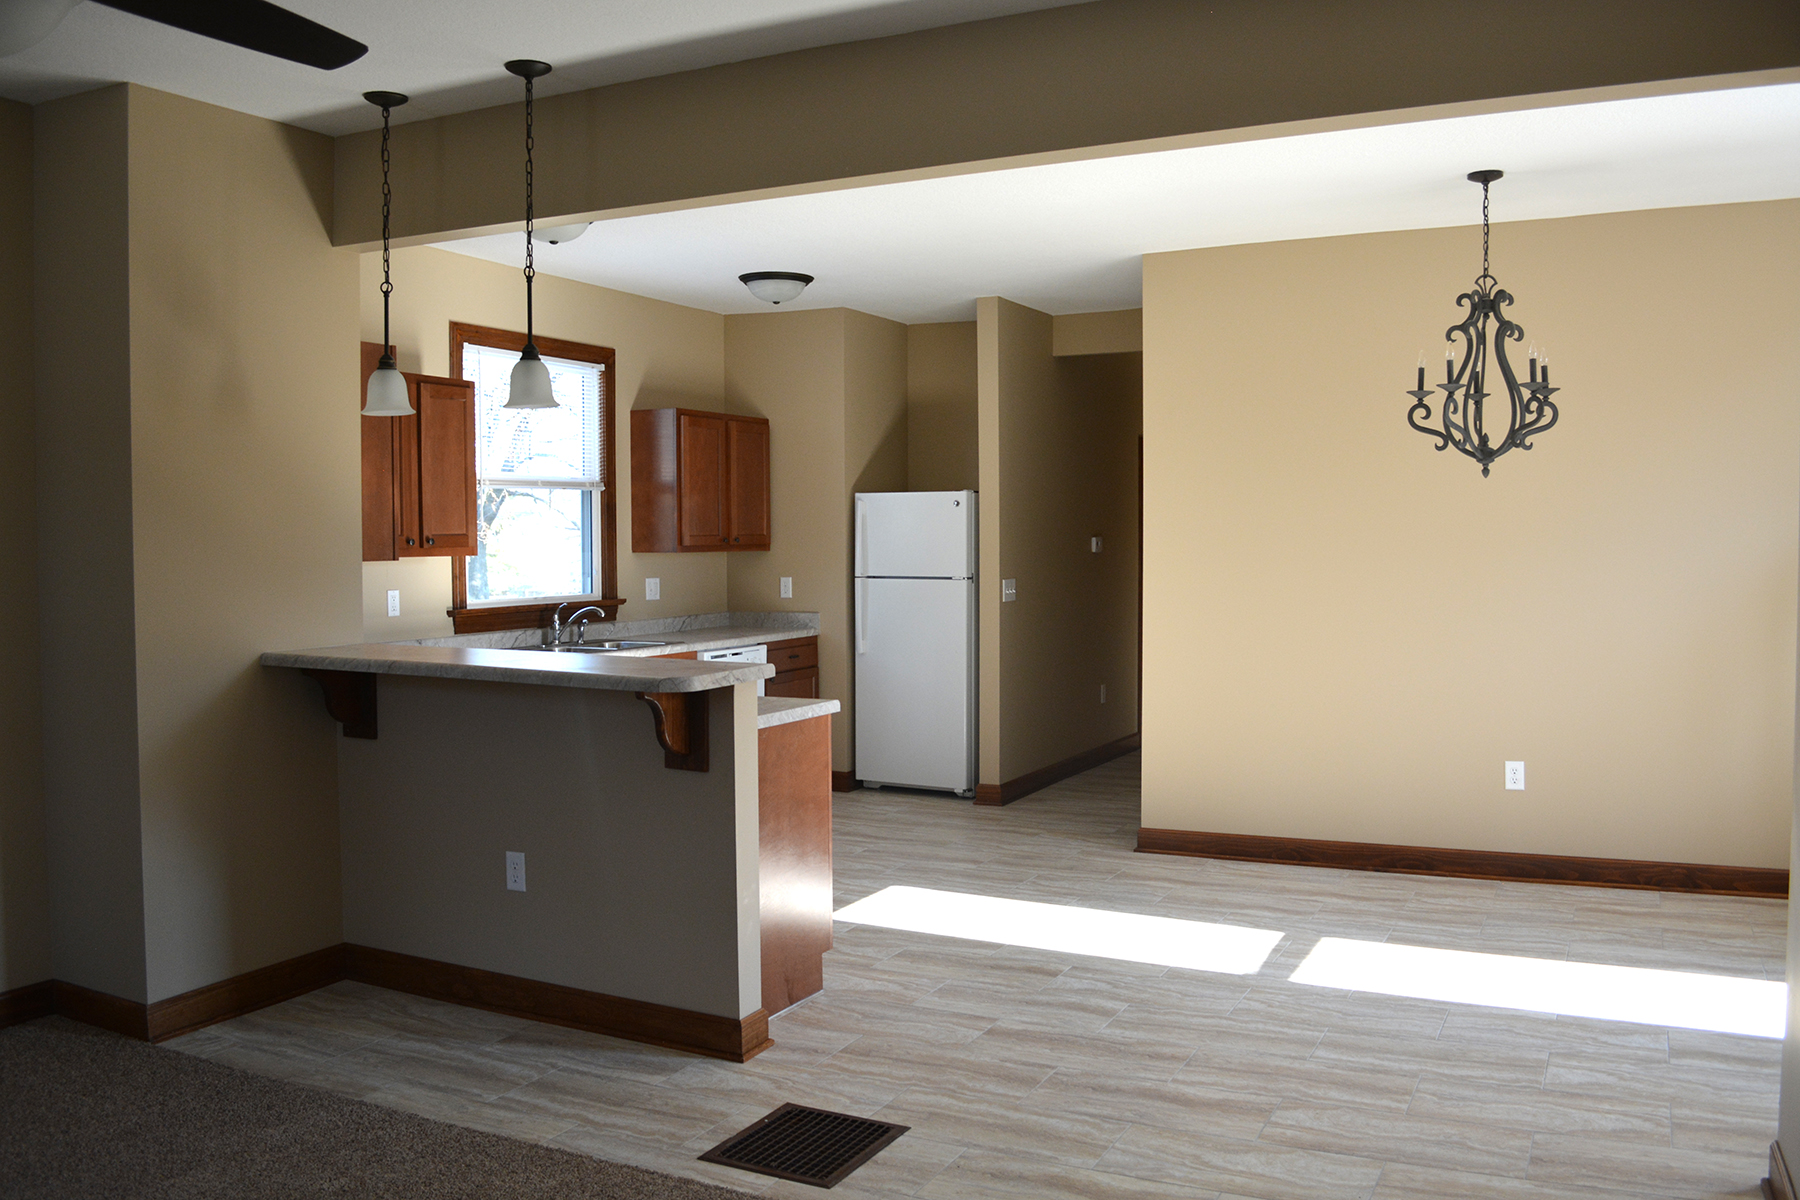 AFTER: From living, looking into kitchen